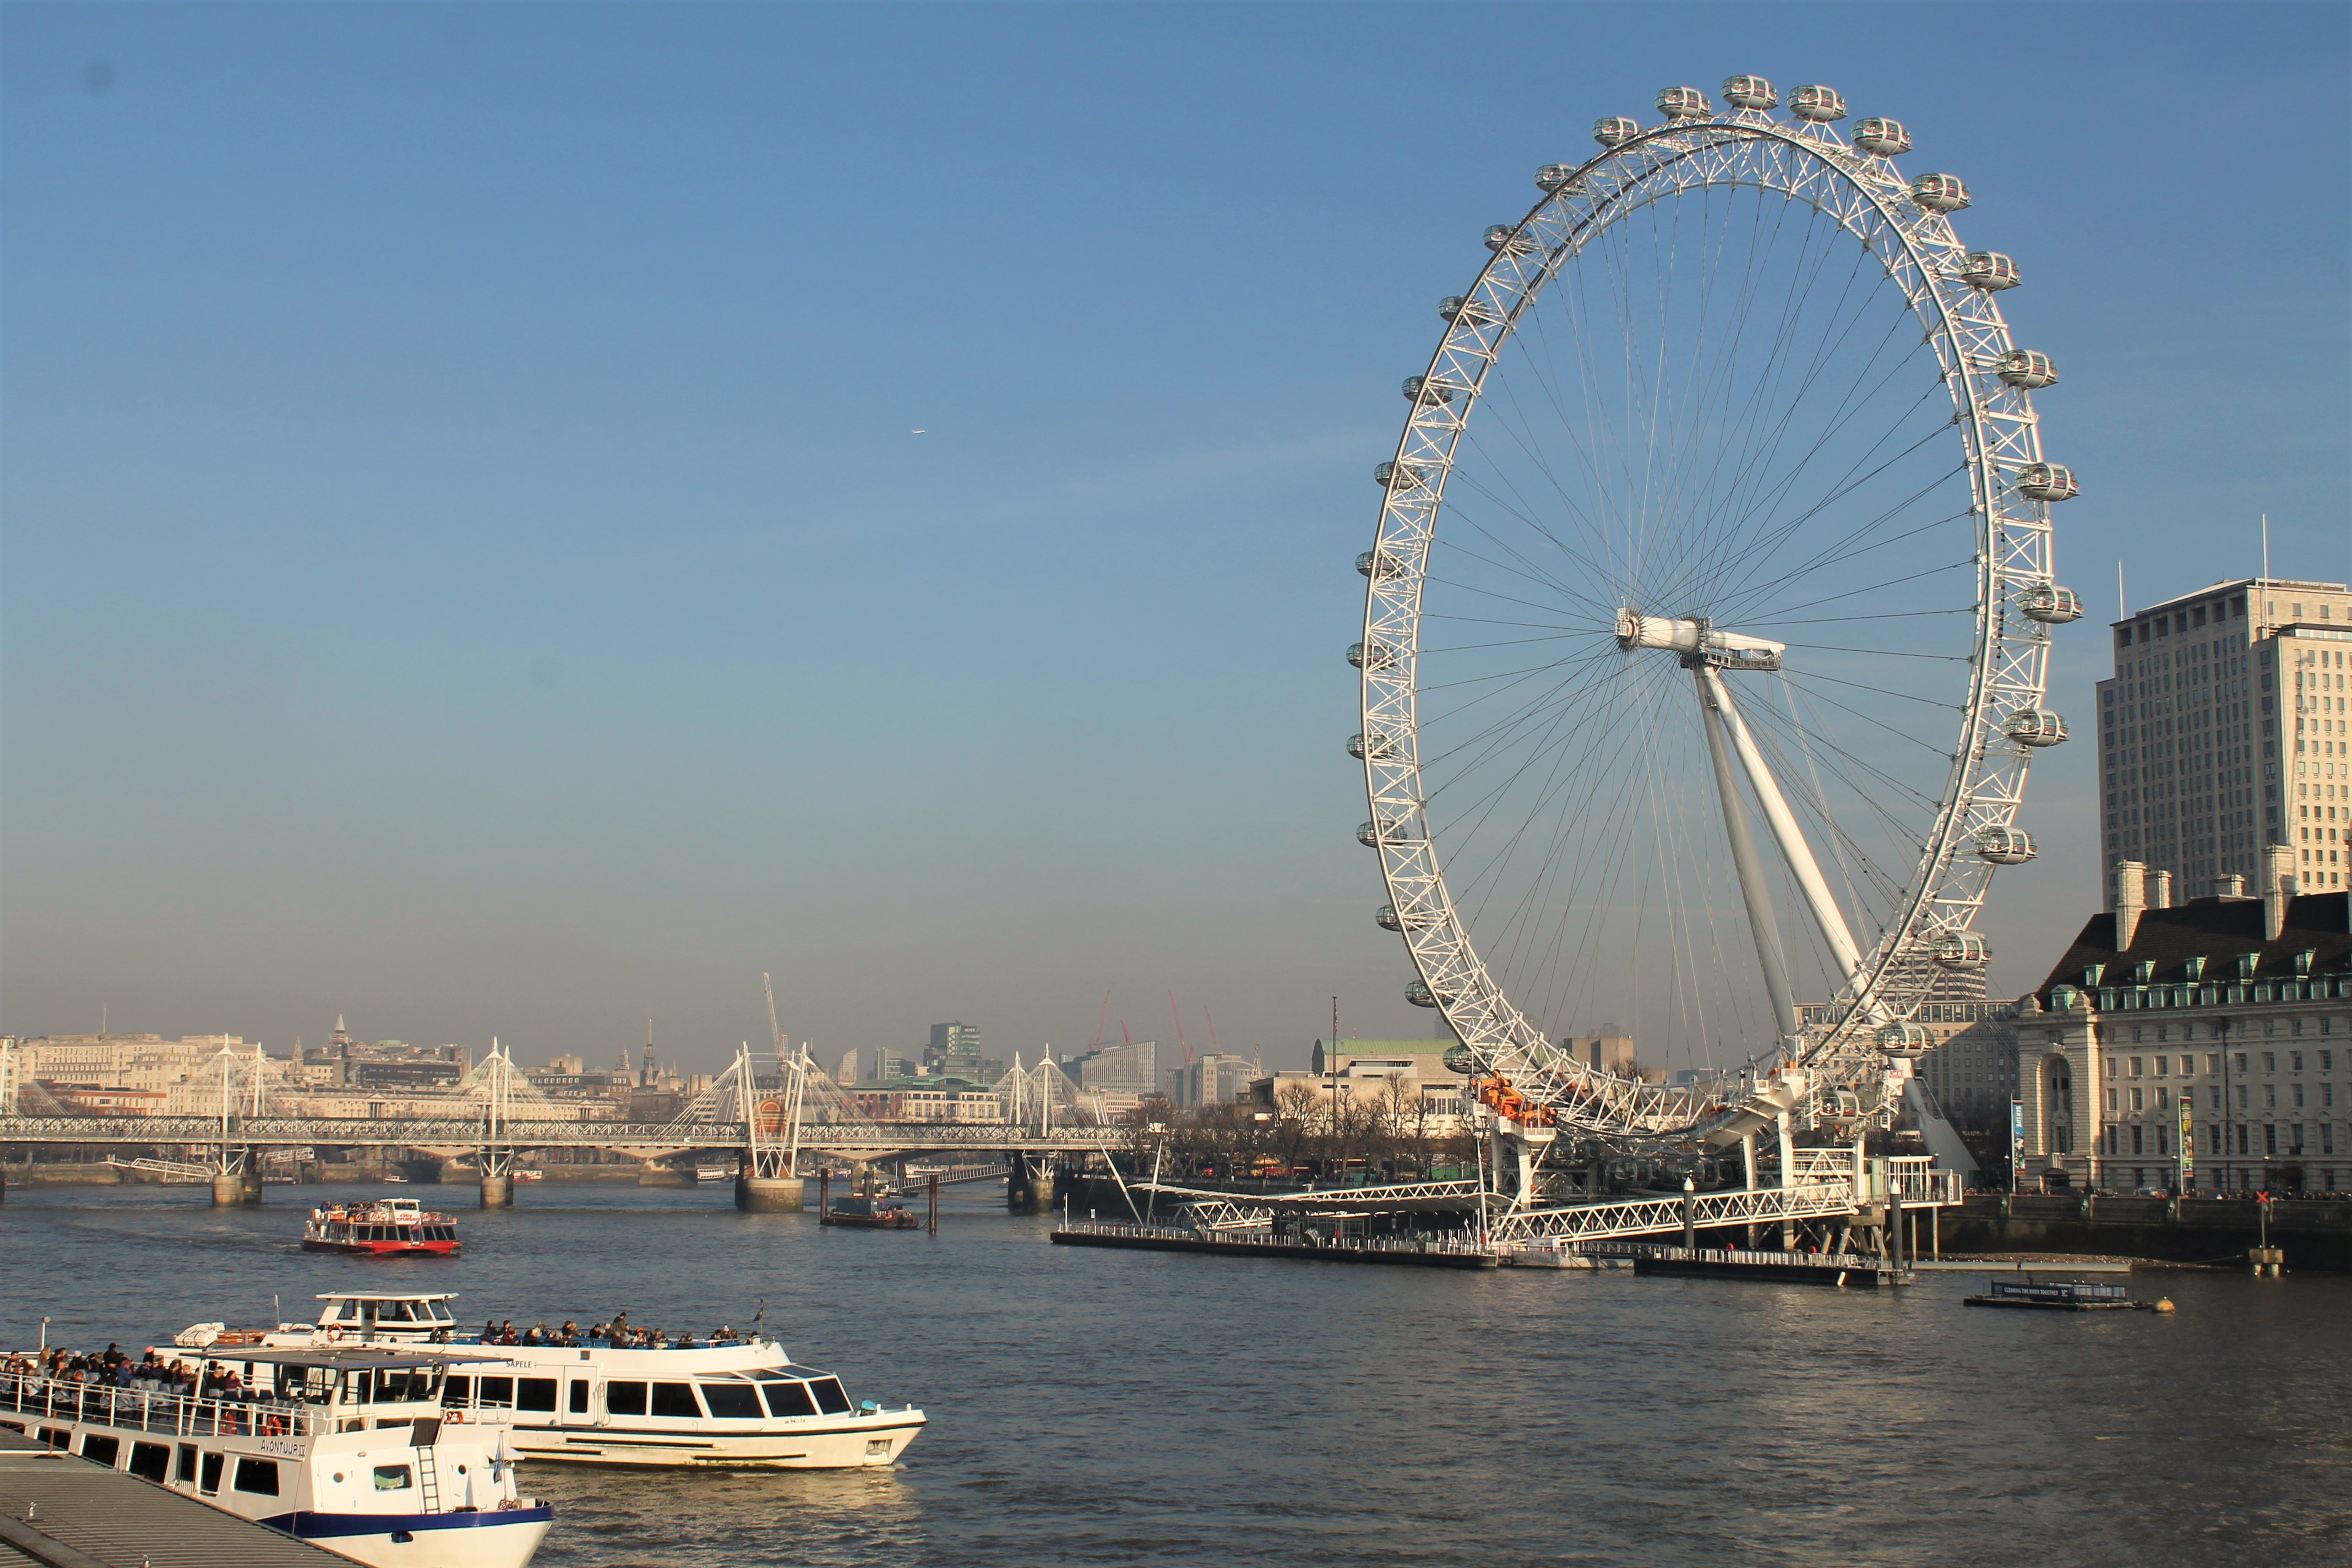 Surprise trip to London - London Eye | Weird at Heart